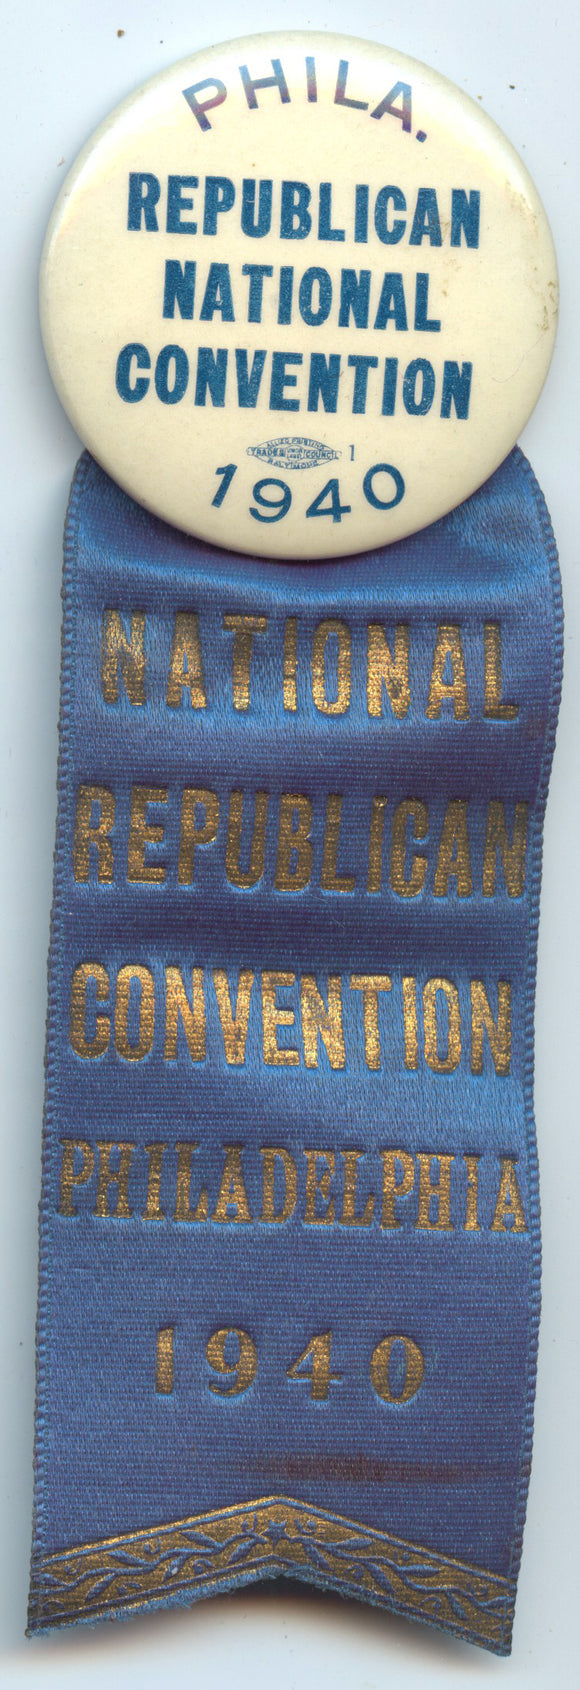 NATIONAL REPUBLICAN CONVENTION PHILADELPHIA 1940